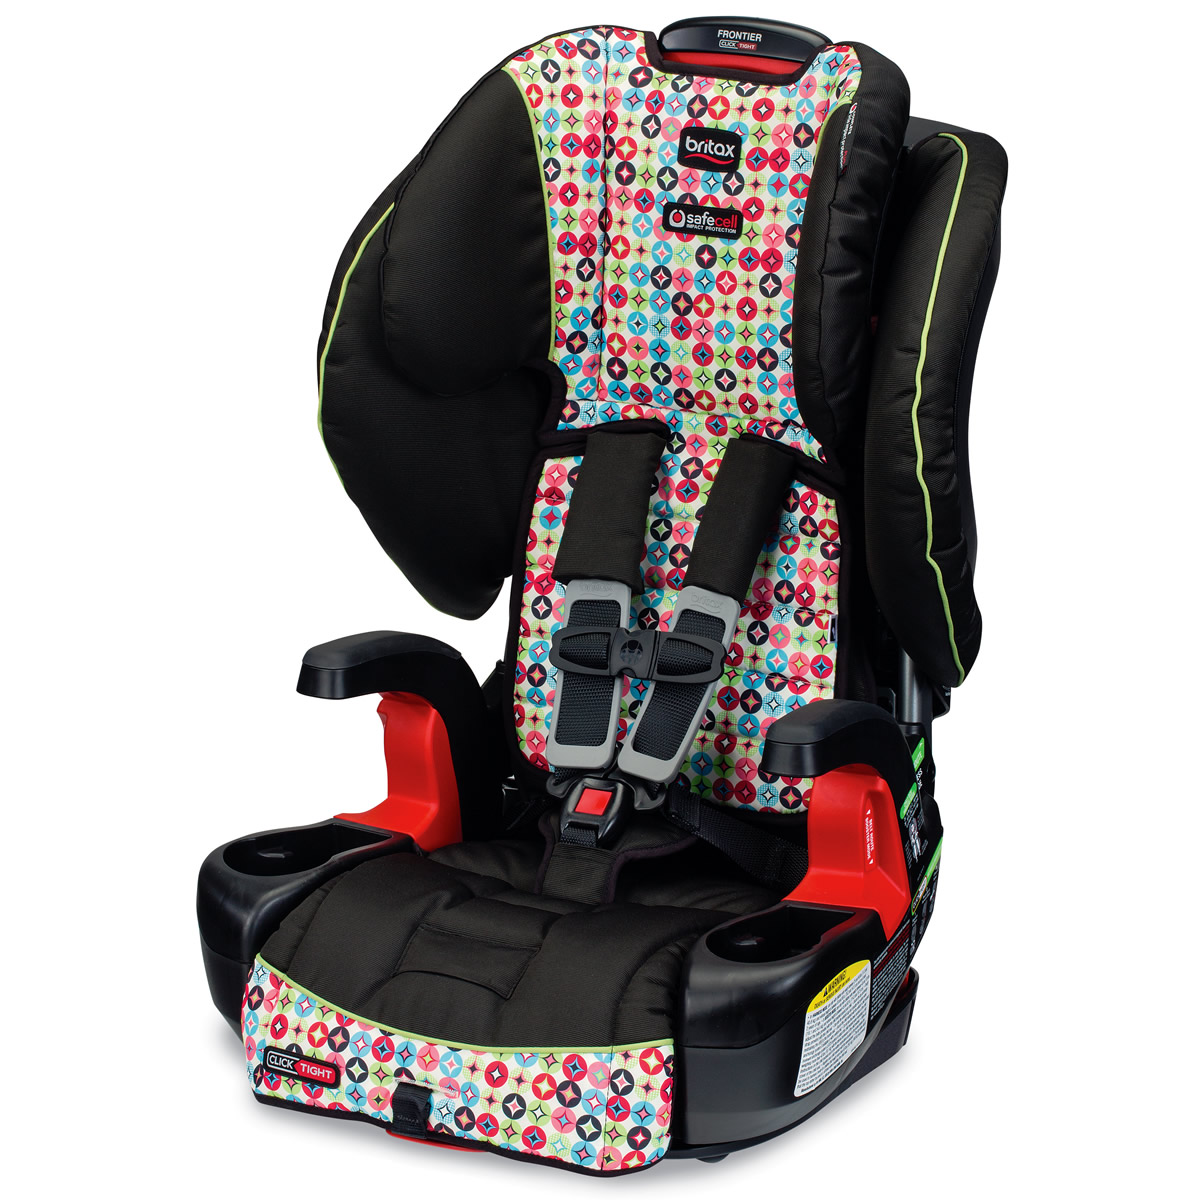 Britax Infant Car Seat Carrier Stroller